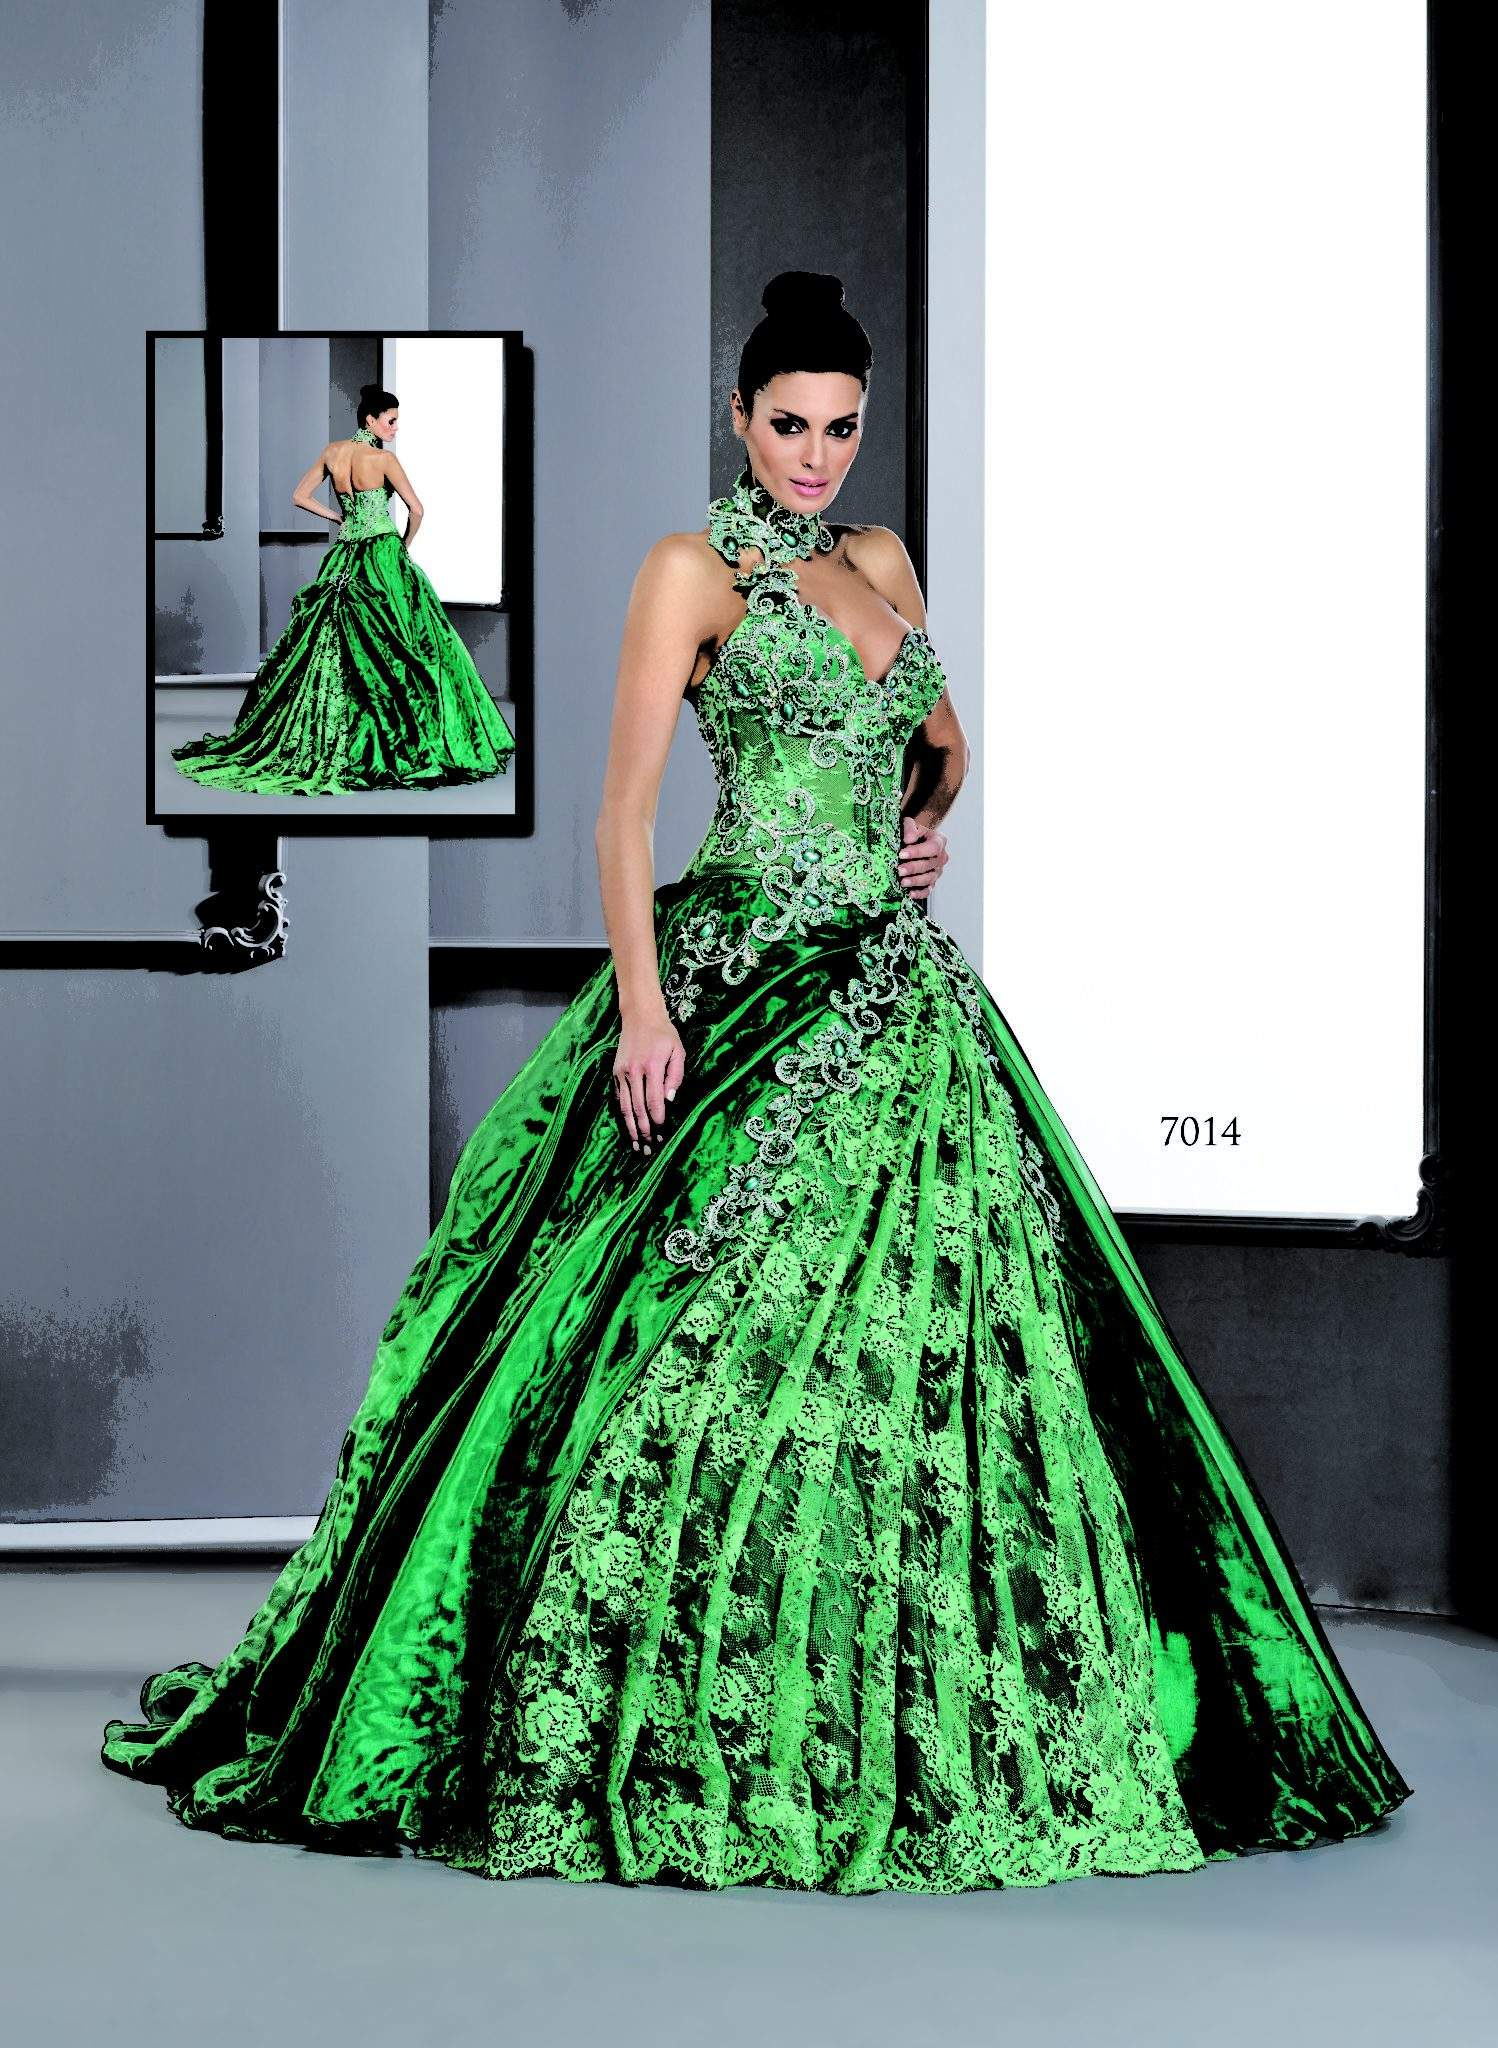 Green Ball Gowns w/ halter collar - Darius Cordell Fashion Ltd